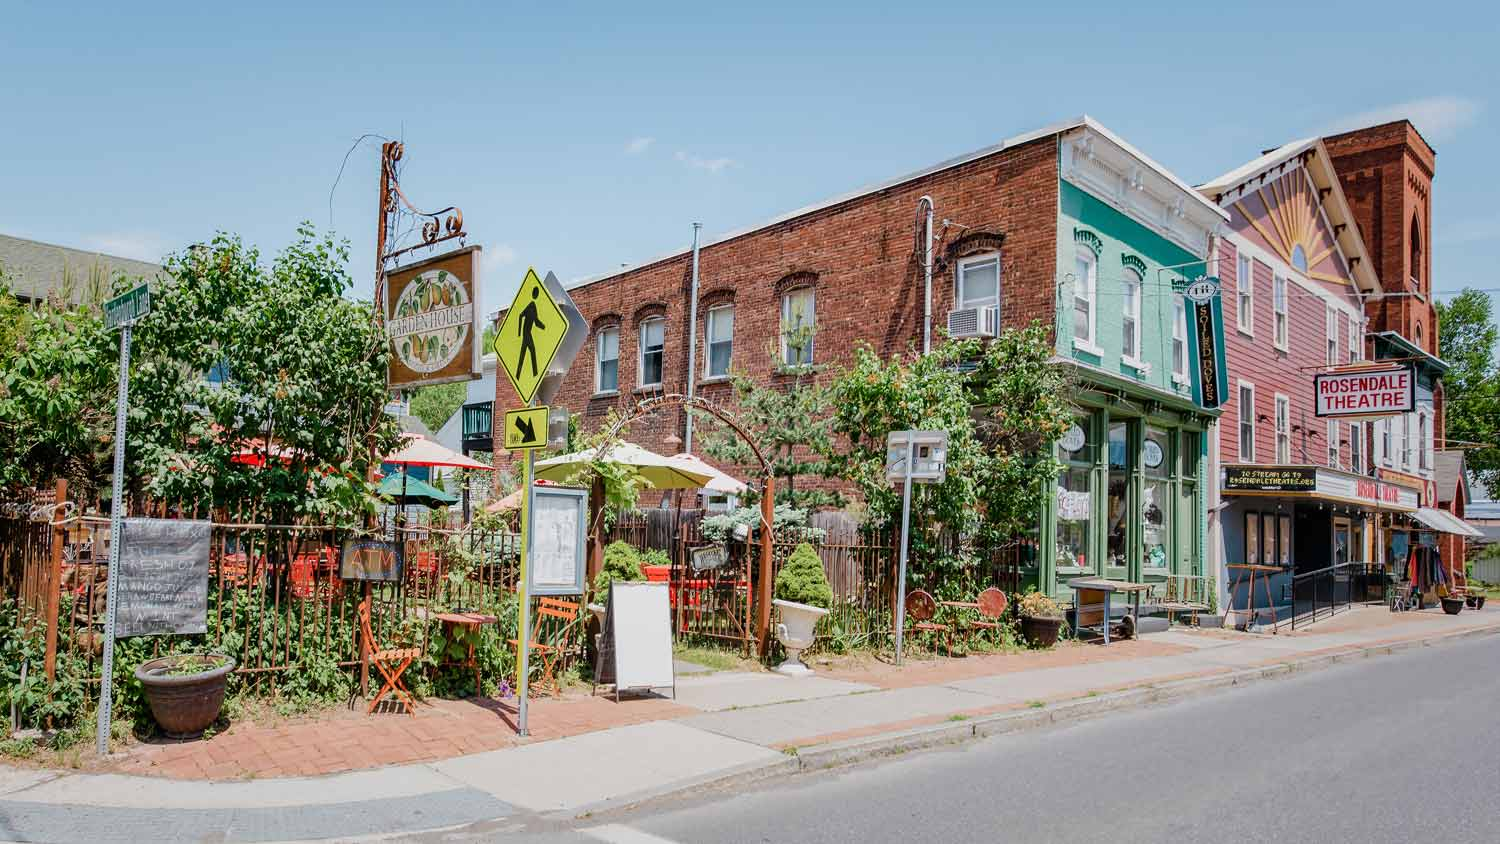 Store fronts in rosendale